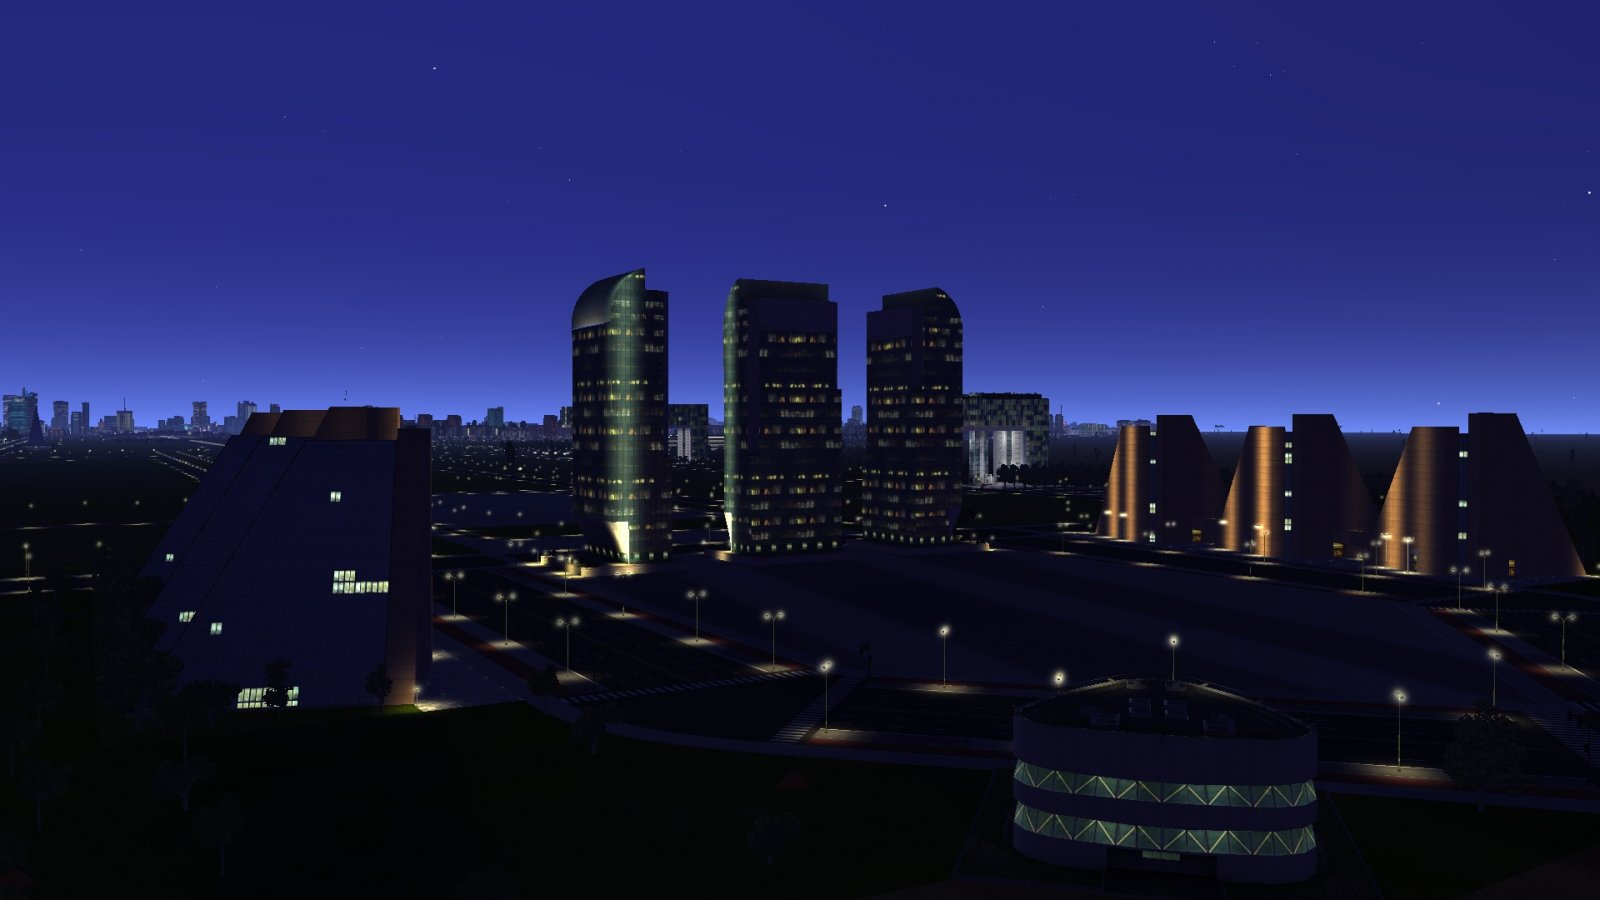 cxl_screenshot_la defense_9.jpg